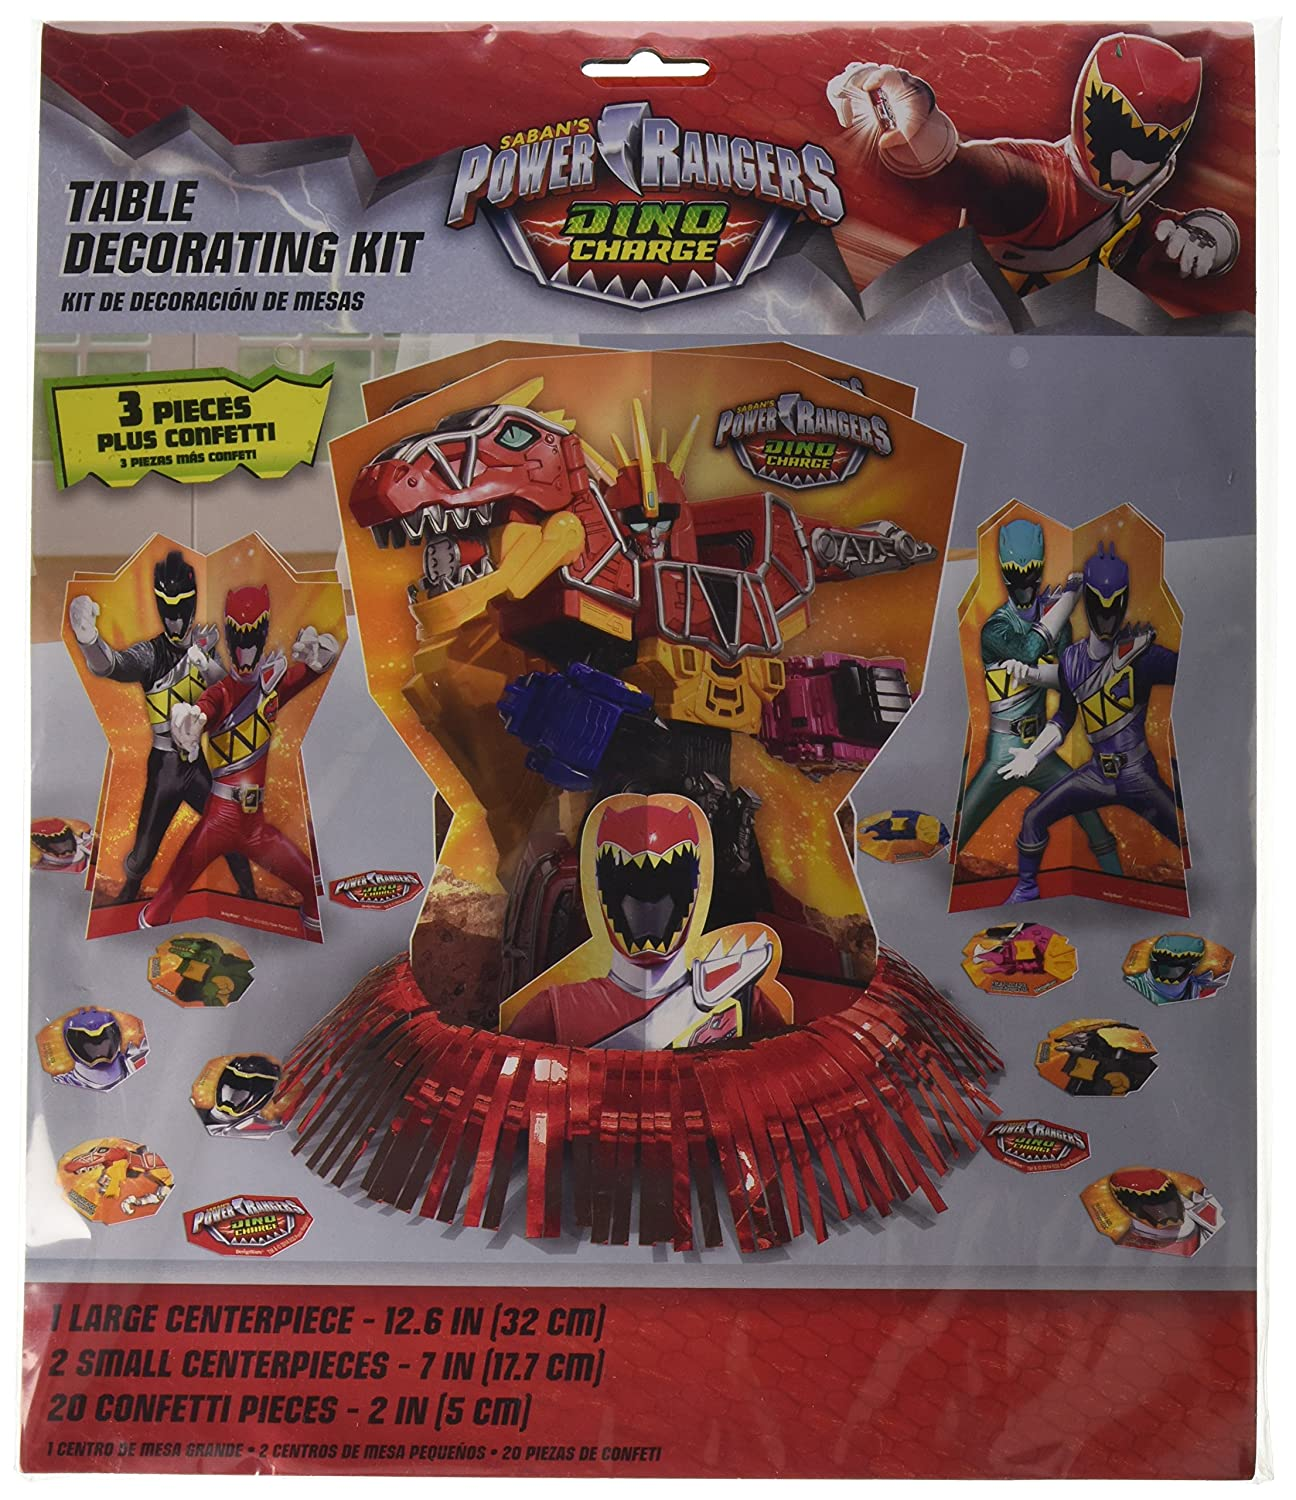 POWER RANGER NINJA STEEL Table Decorating Kit 23 Piece Centerpiece Party Supply